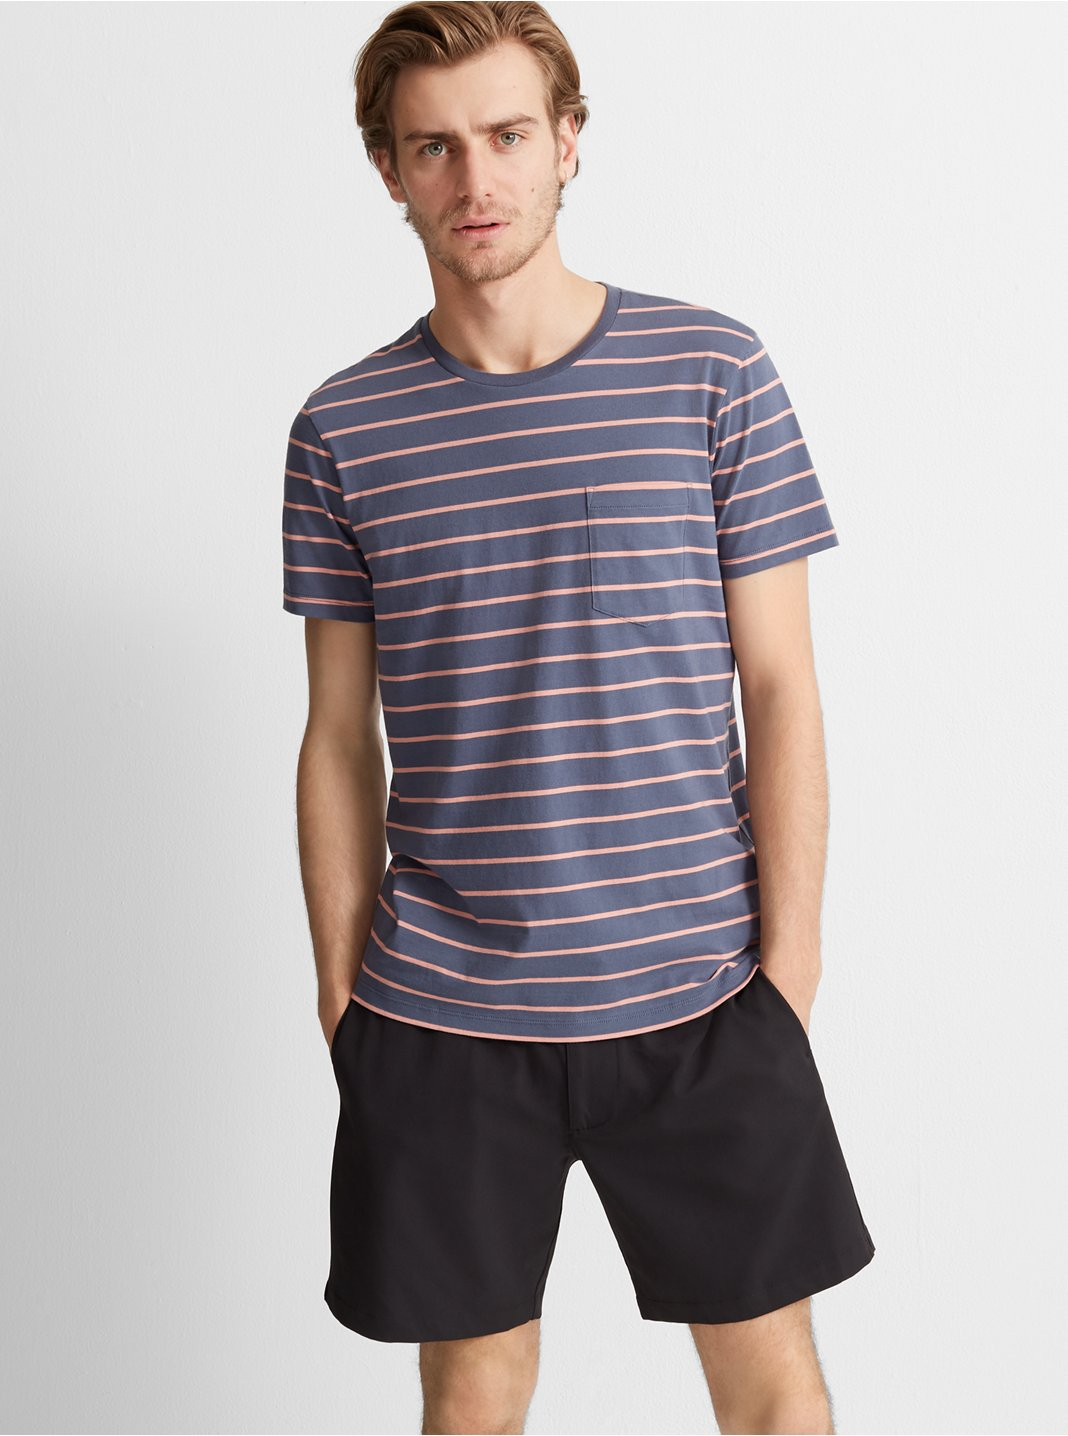 Williams Stripe Crew